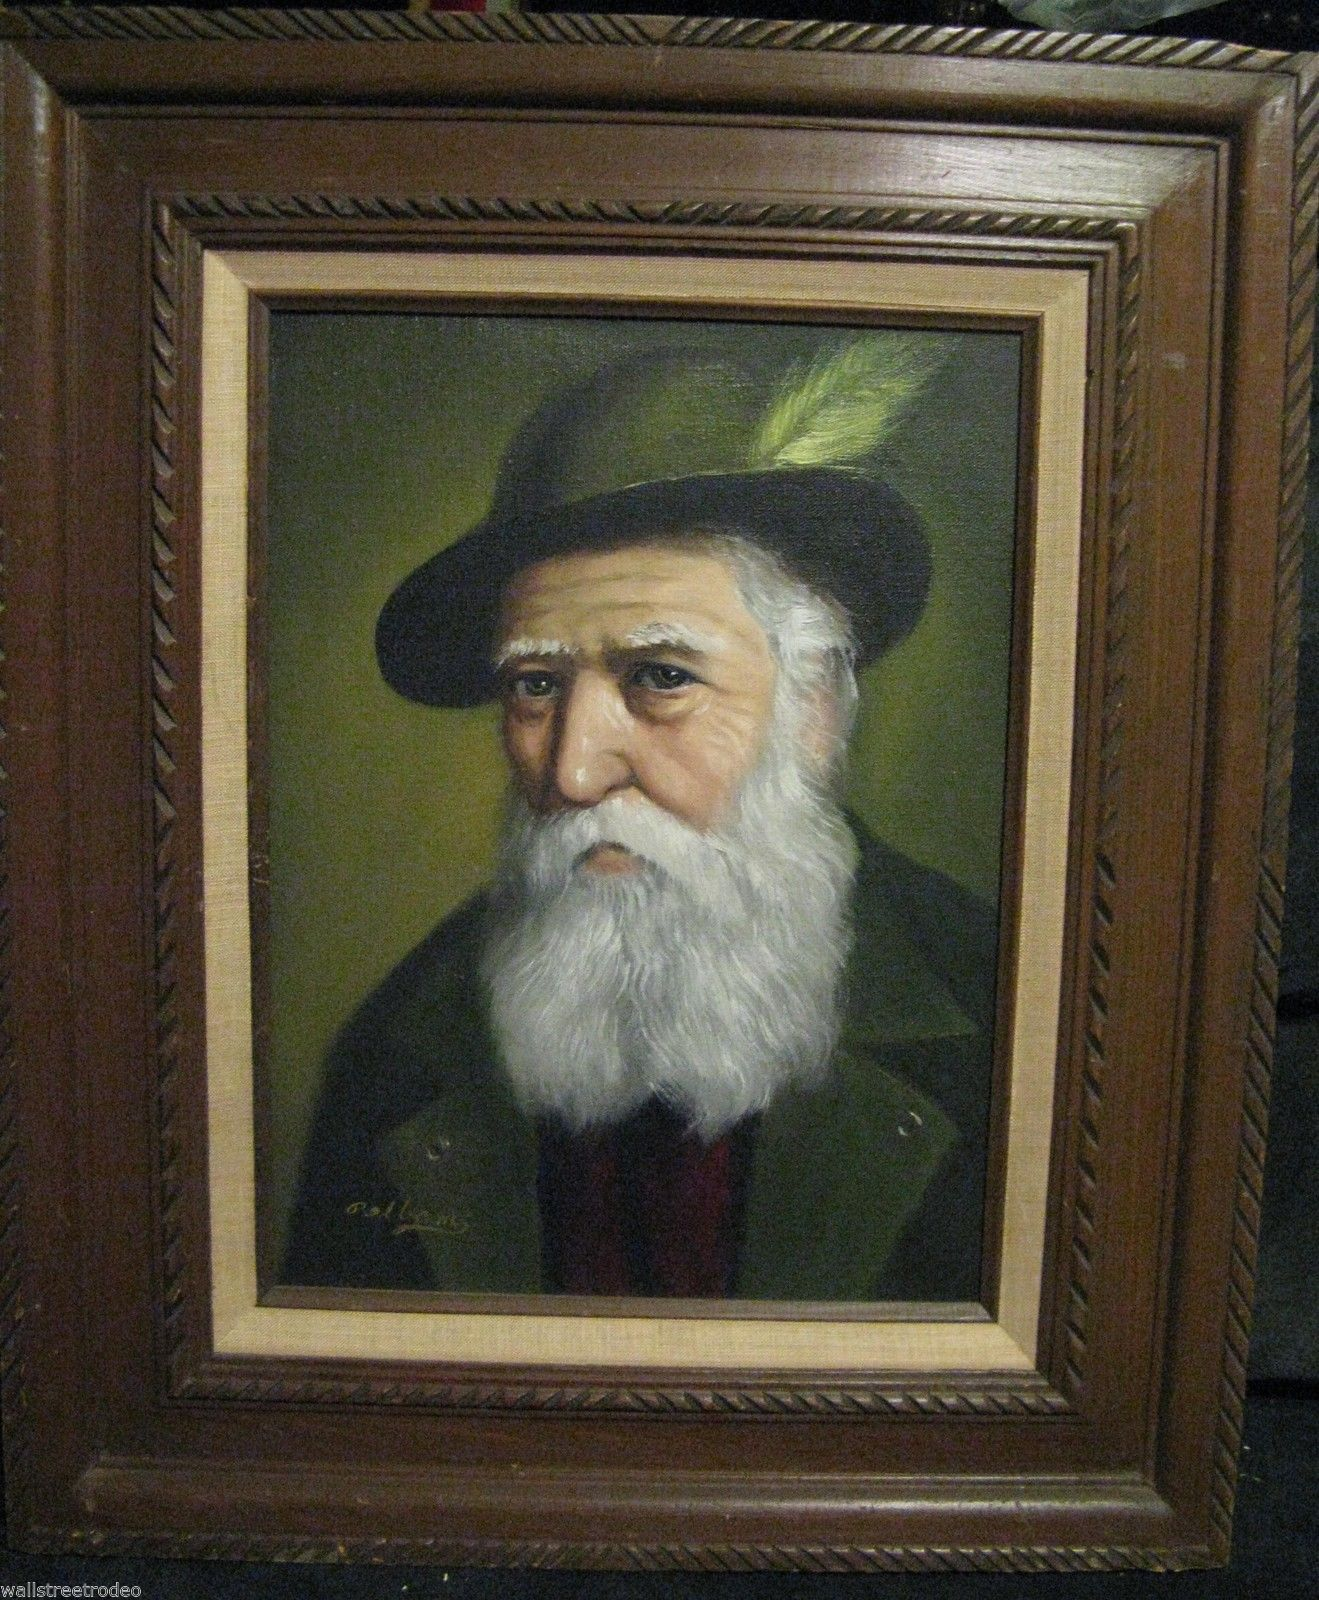 David Pelbam Bavarian Alpine European old man with hat portrait oil painting